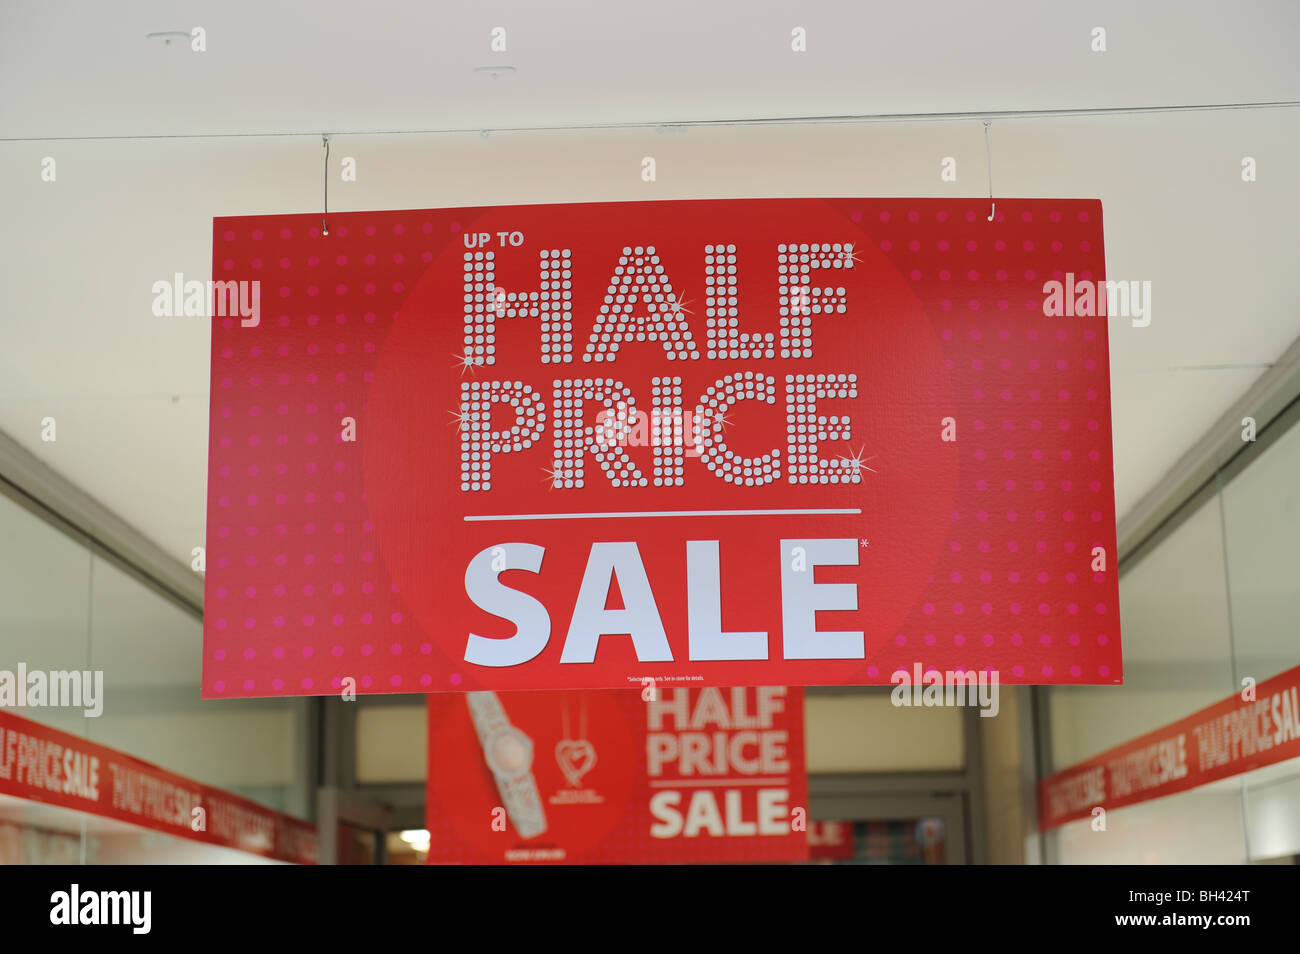 sign sale sales clearance cut-price recession Christmas New Year bargain spend save credit  money reduced stock - Stock Image